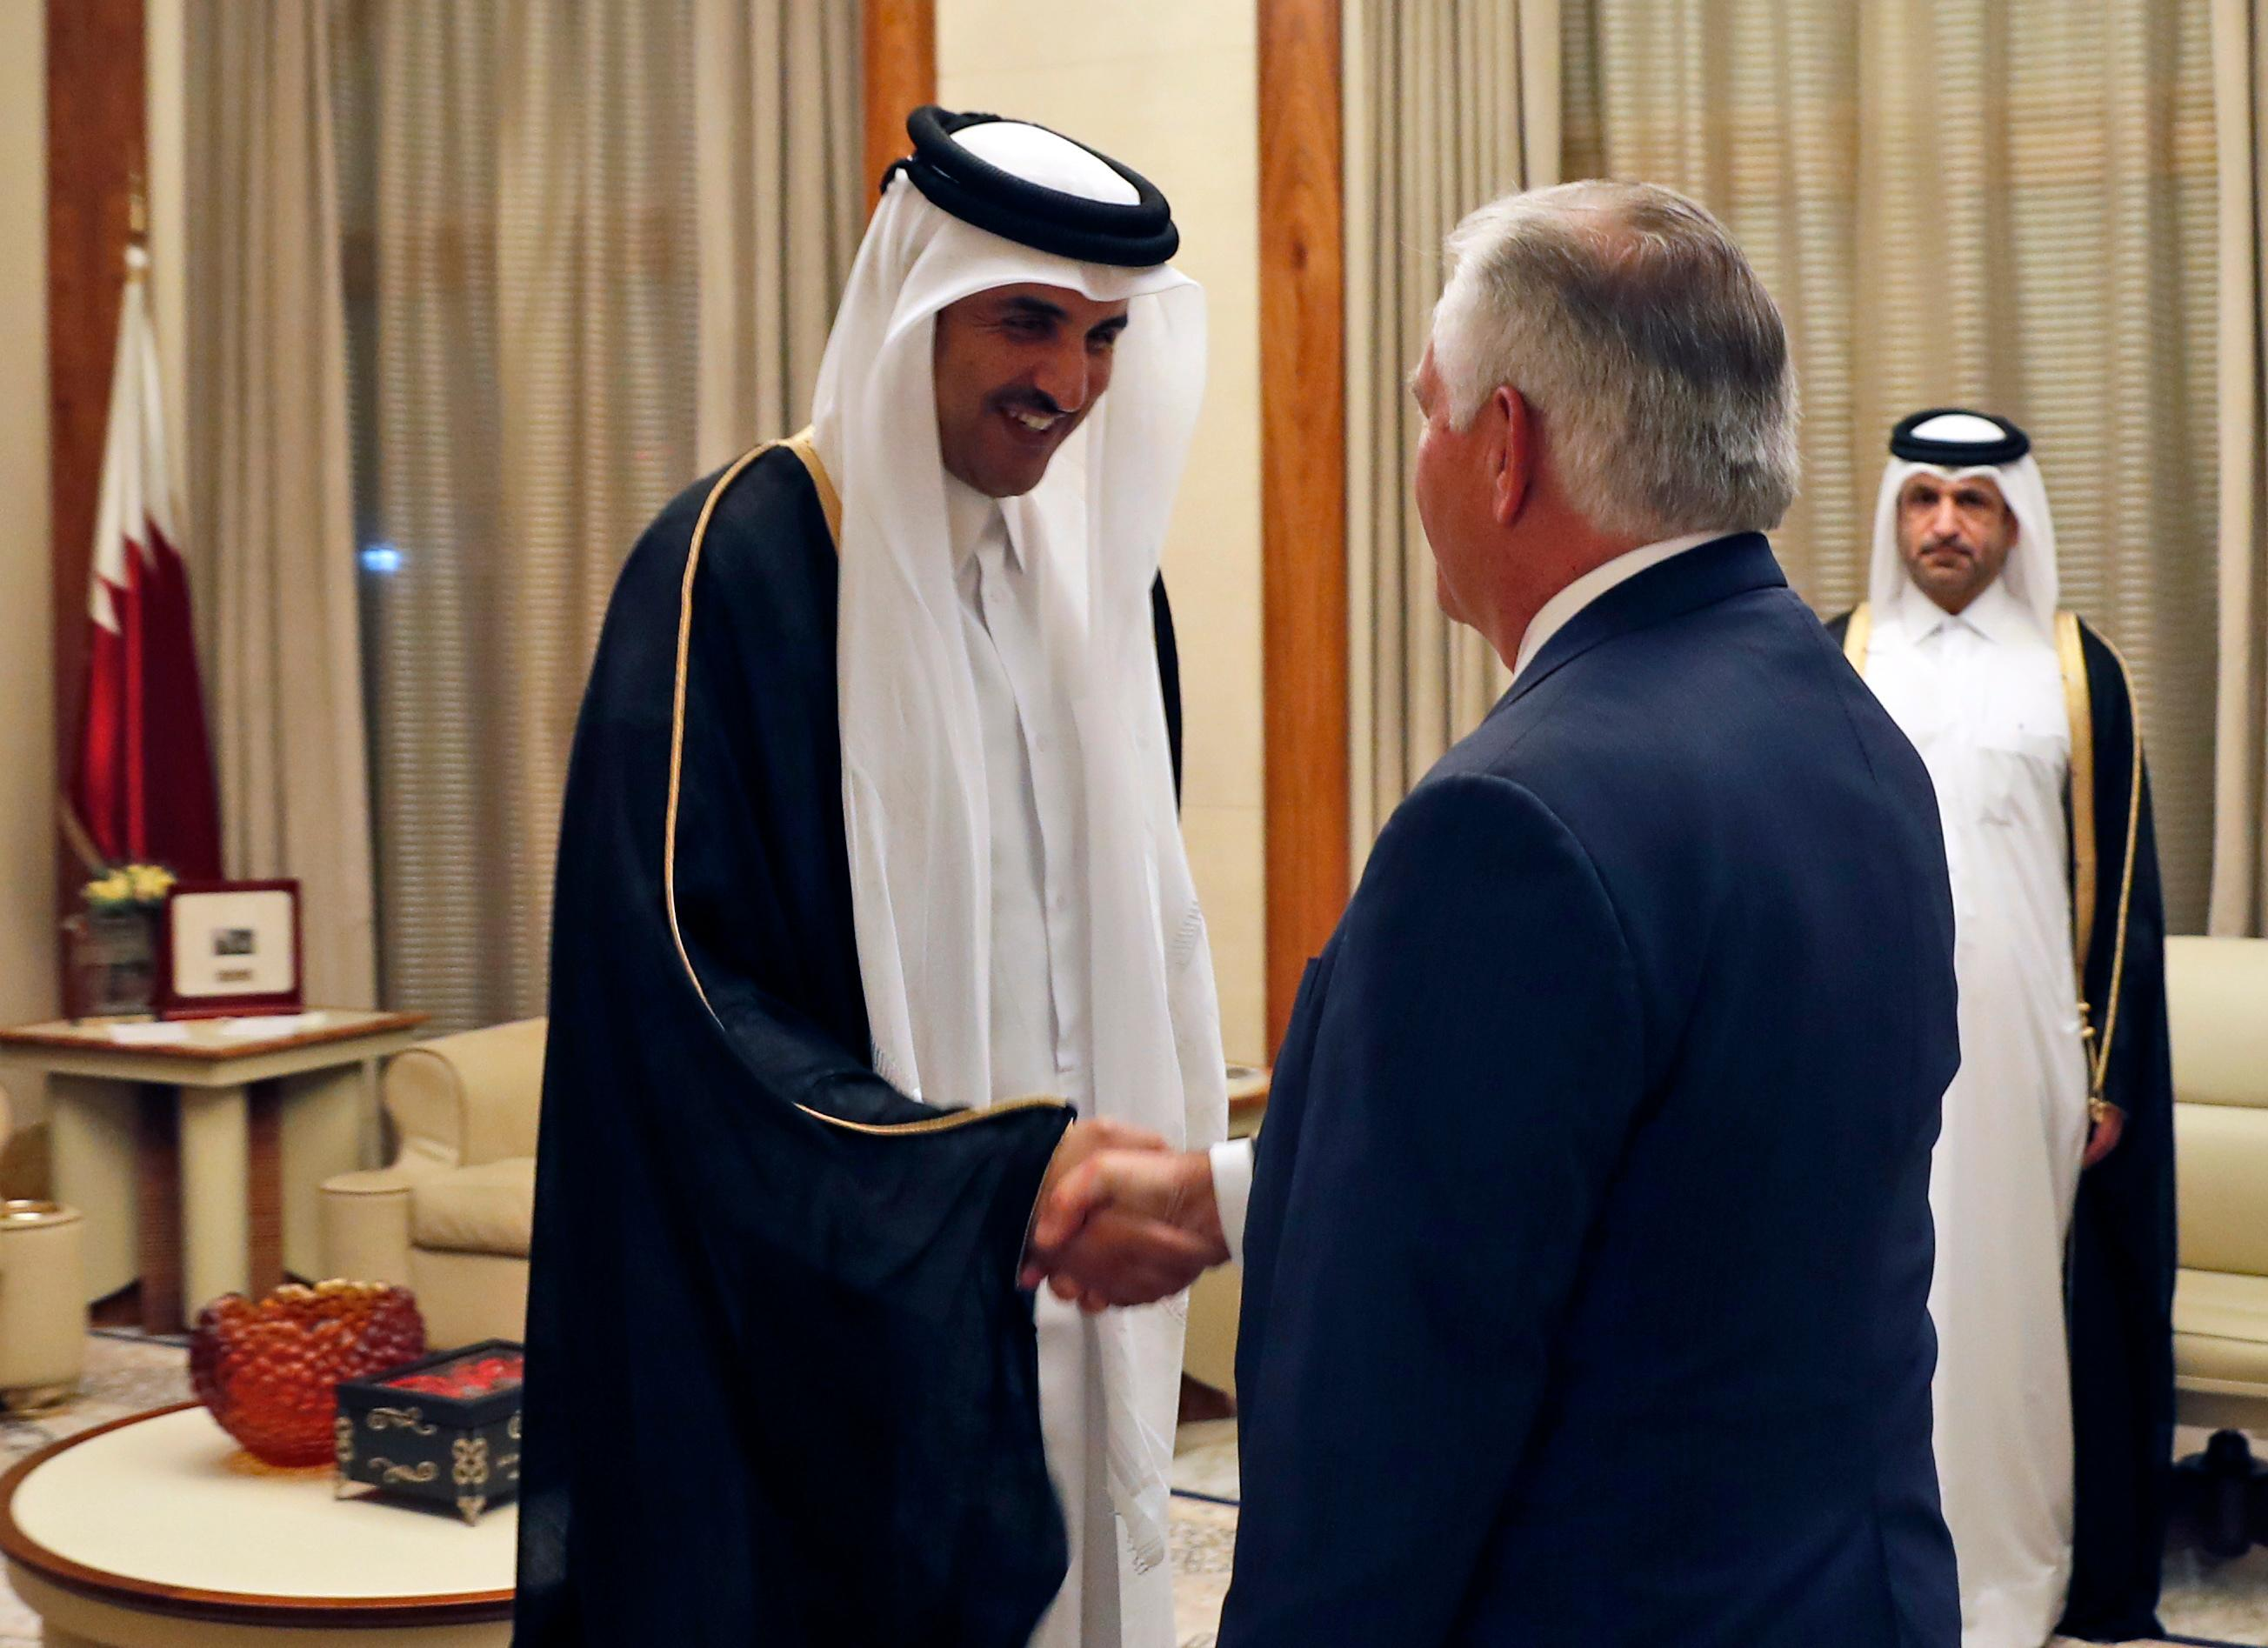 Secretary of State Rex Tillerson, right, shakes hands with Qatar's Emir Sheikh Tamim bin Hamad Al Thani before a meeting, Sunday, Oct. 22, 2017, in Doha, Qatar. (AP Photo/Alex Brandon, Pool)